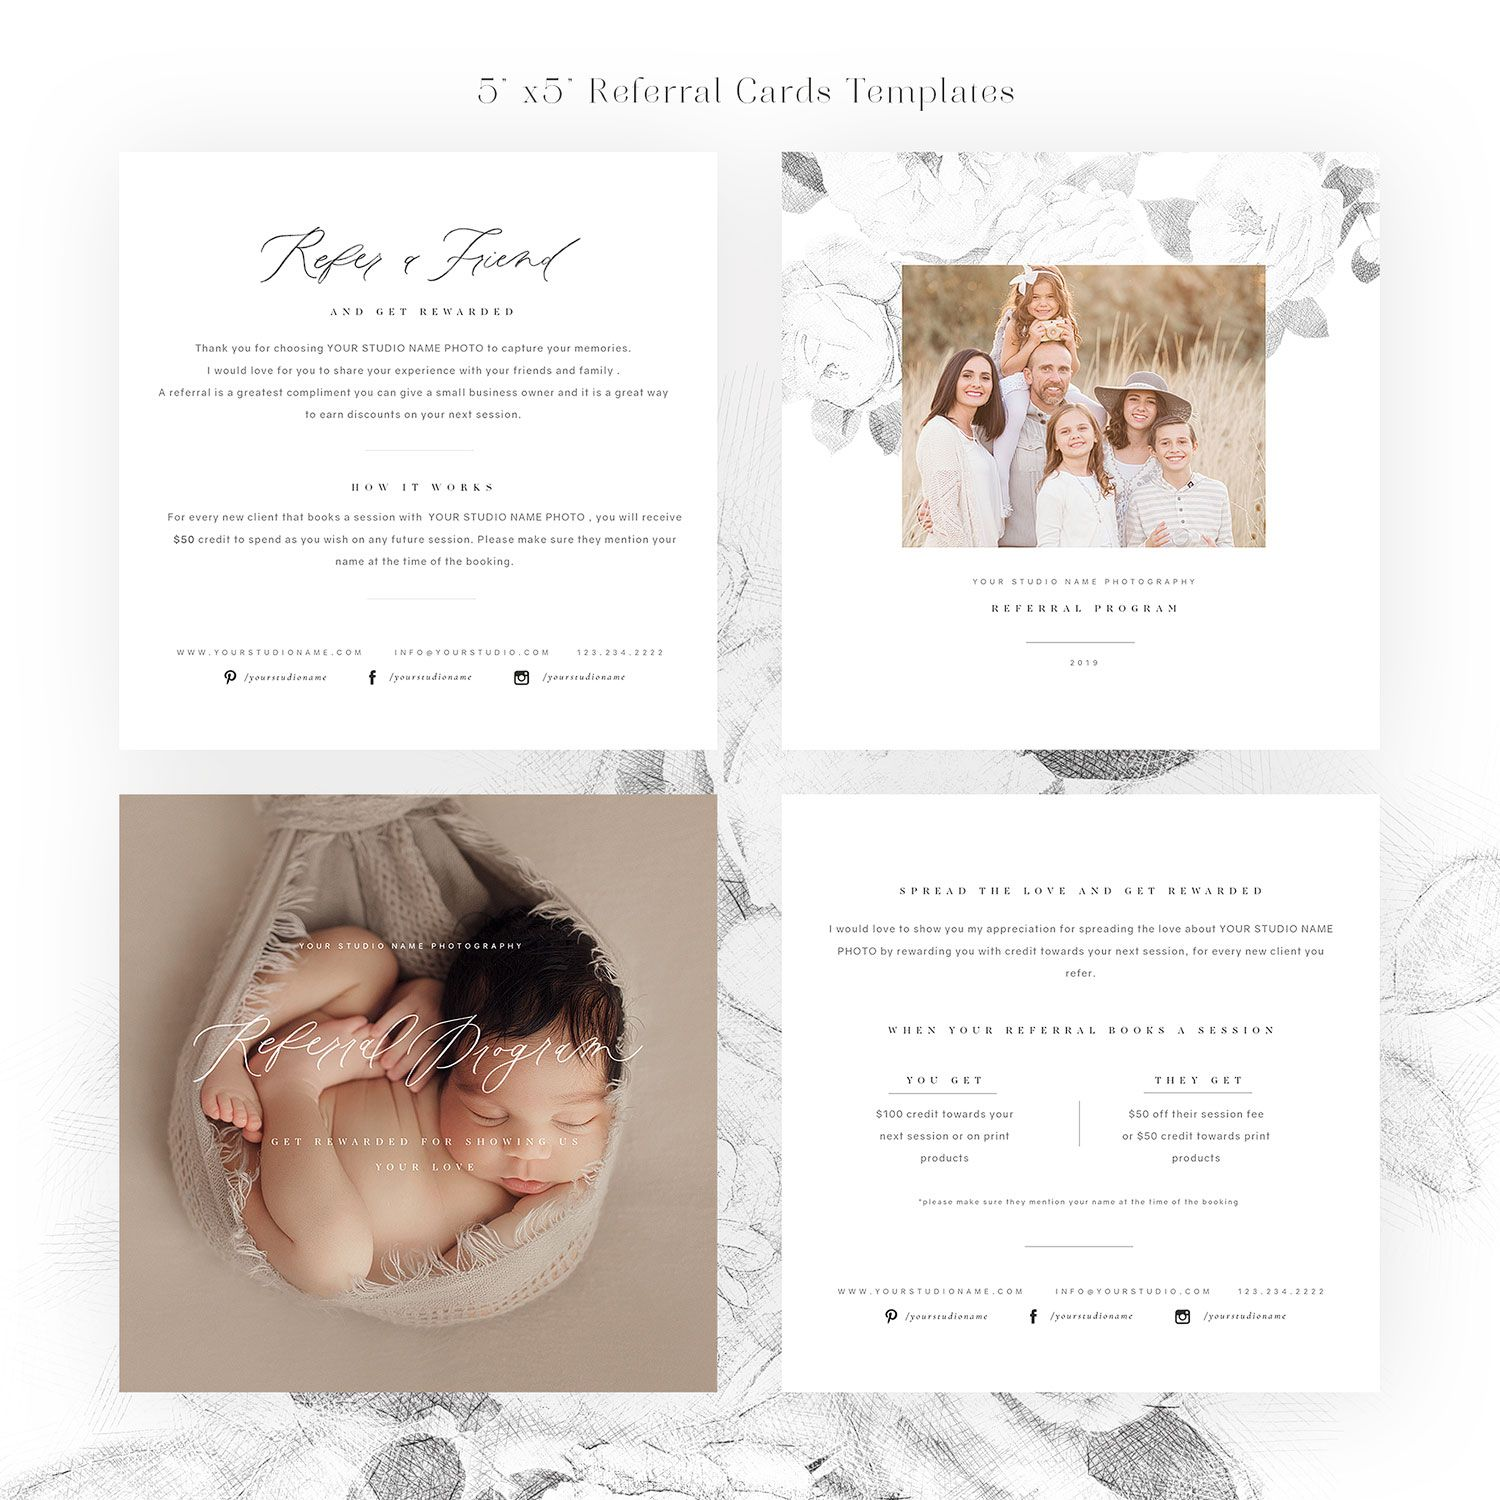 Referral Love 5 5 Card Templates Pertaining To Photography Referral Card Templates Professional Te Referral Cards Free Business Card Templates Card Templates